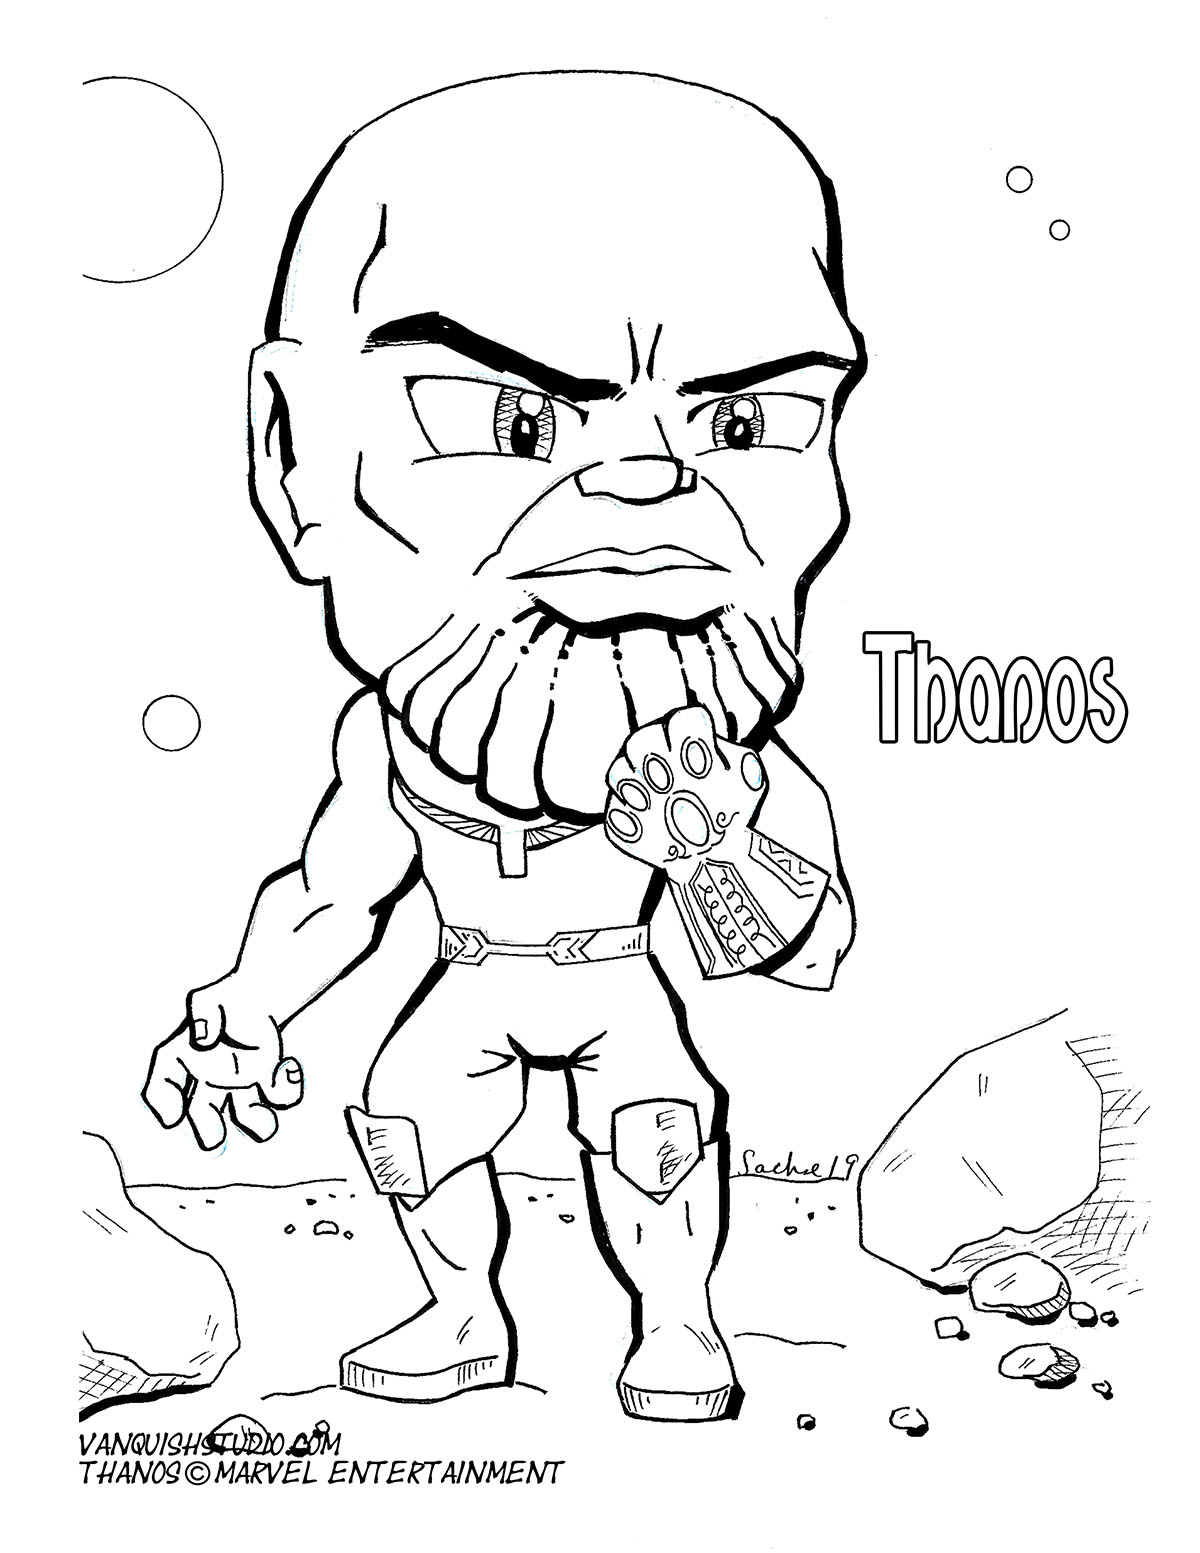 Thanos3 Coloring page